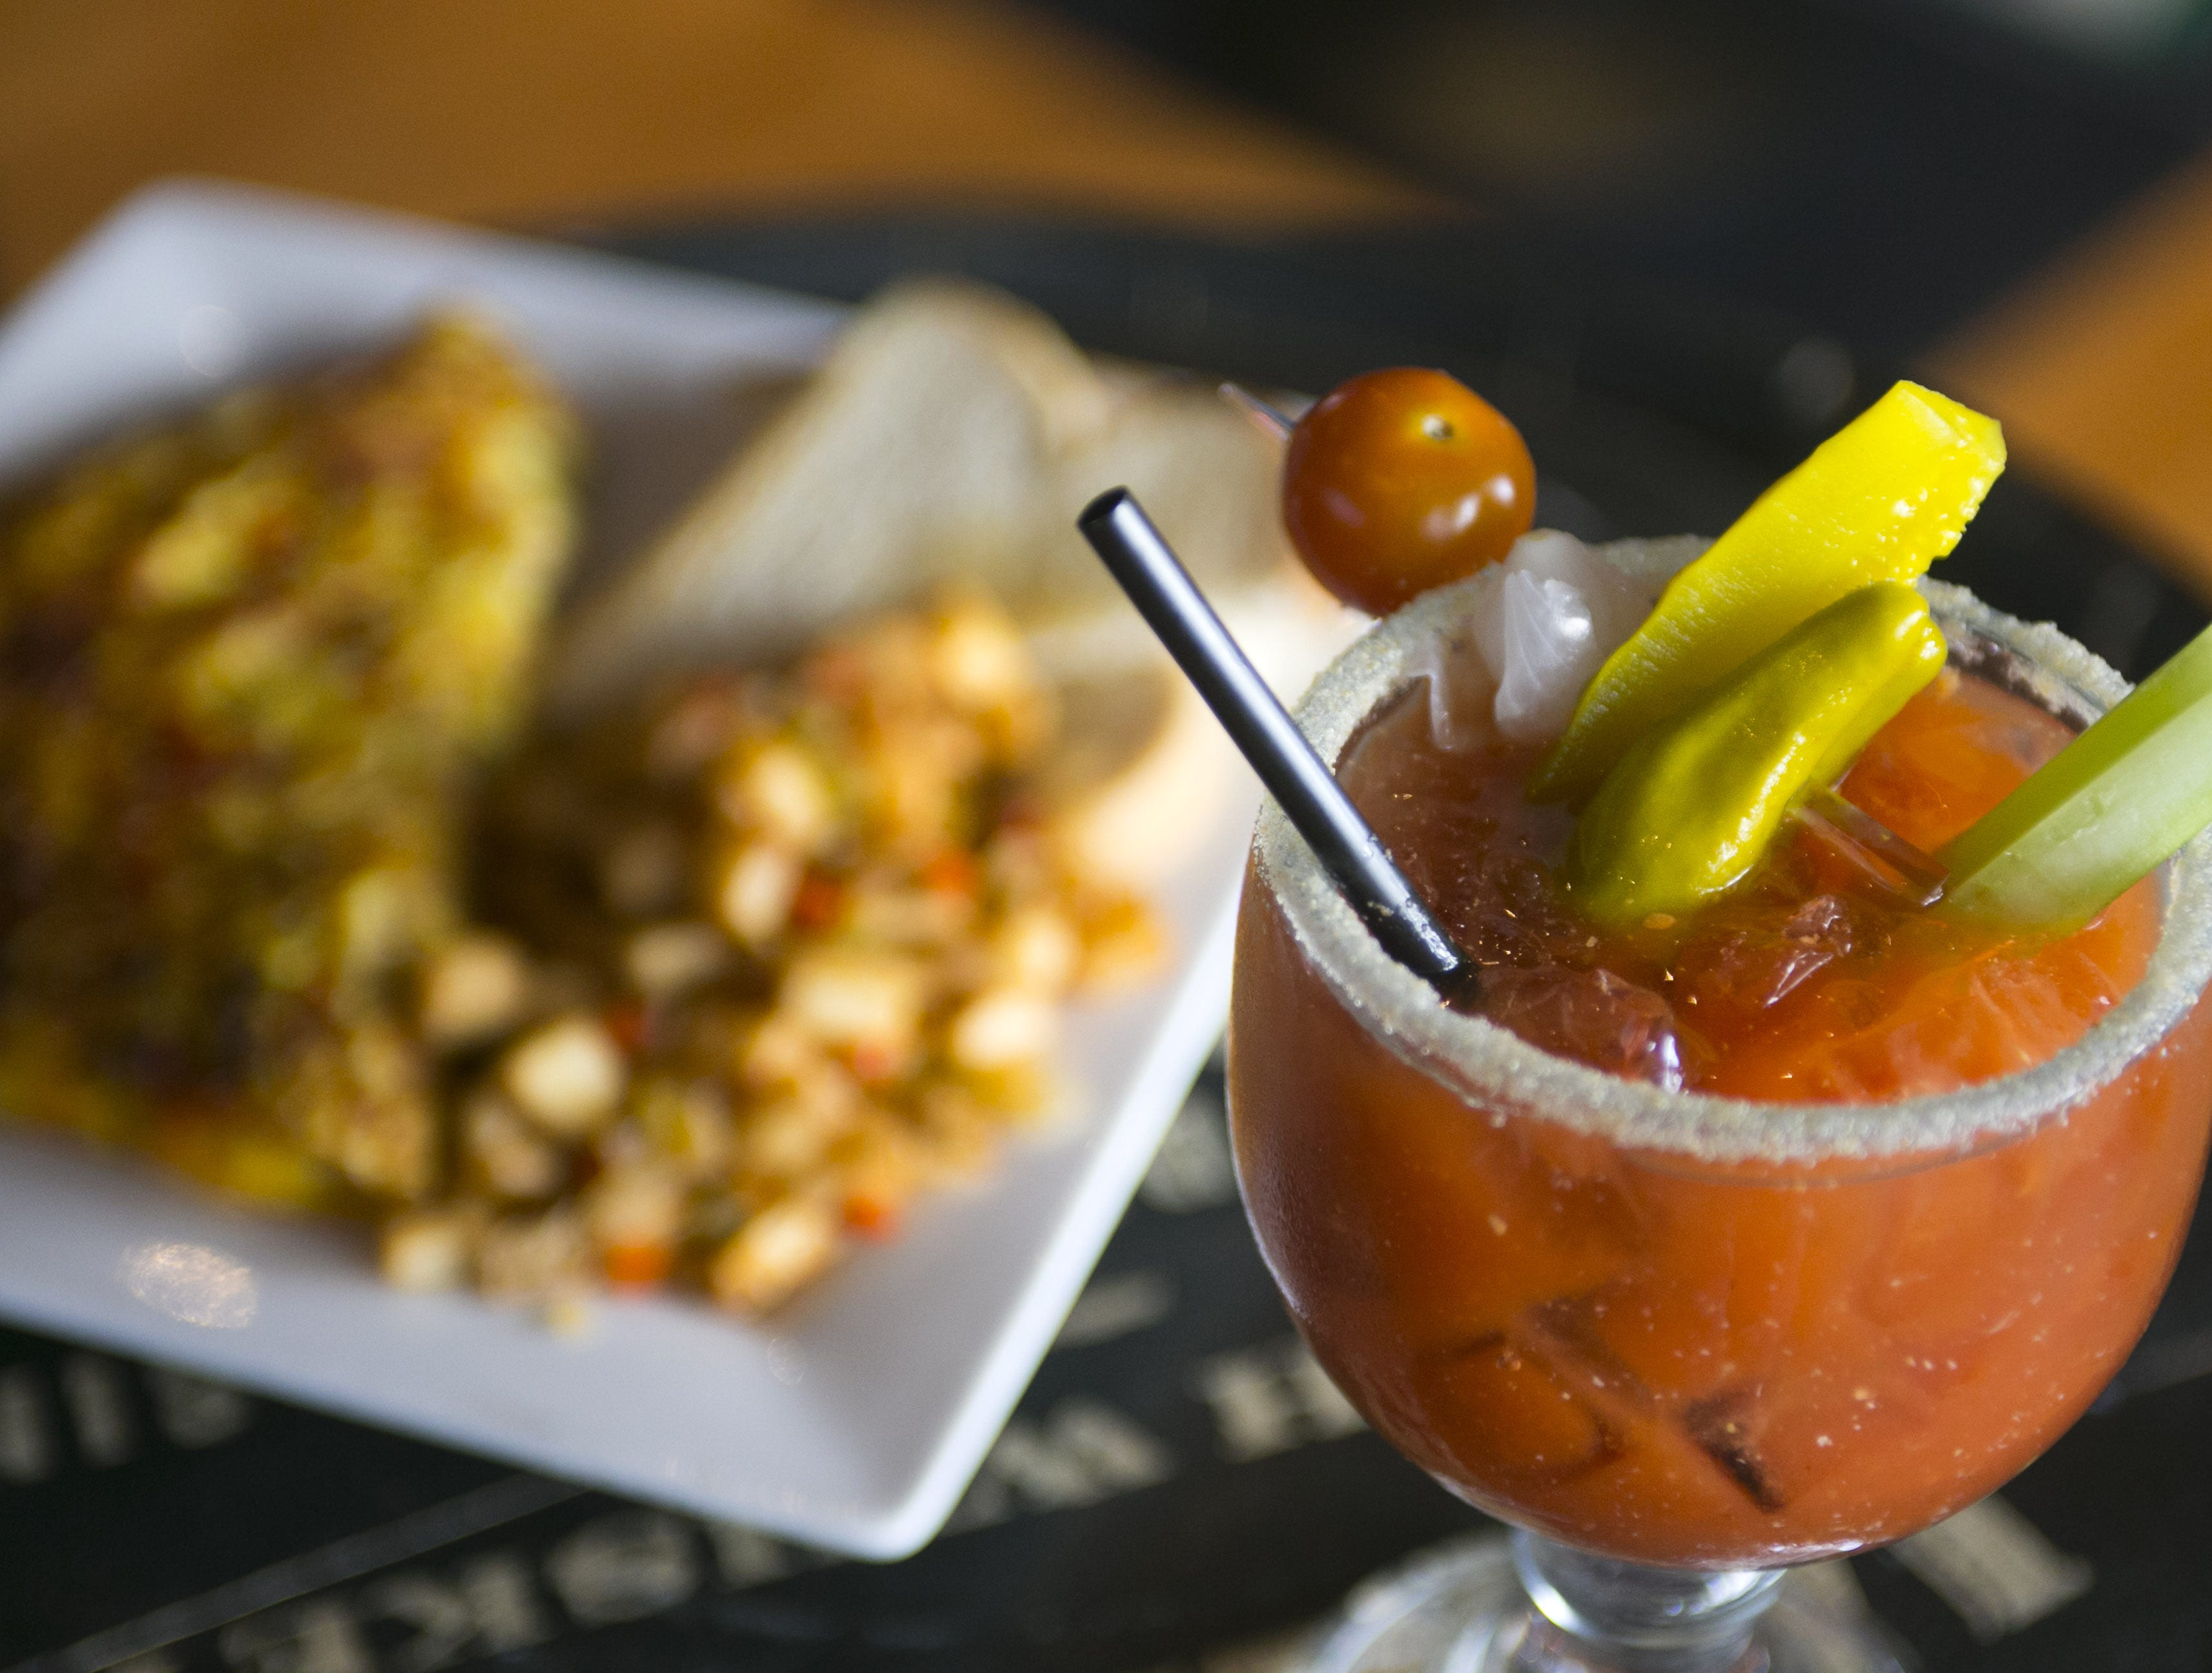 A well-garnished Bloody Mary goes perfectly with an omelet at the Arcadia Tavern.